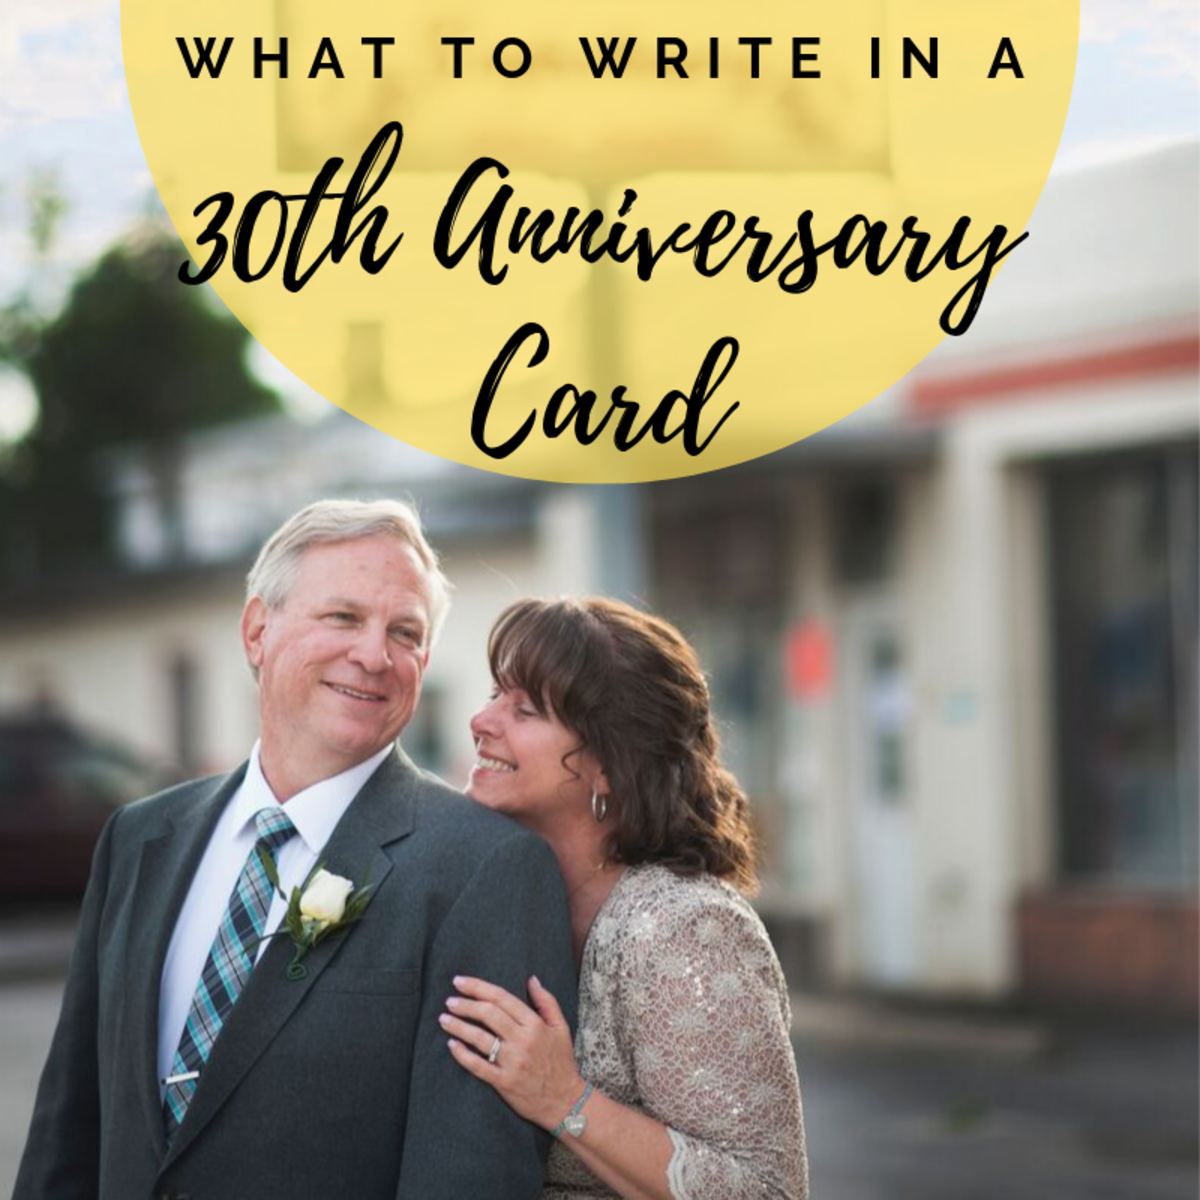 30th Anniversary Wishes, Quotes, and Poems to Write in a Card